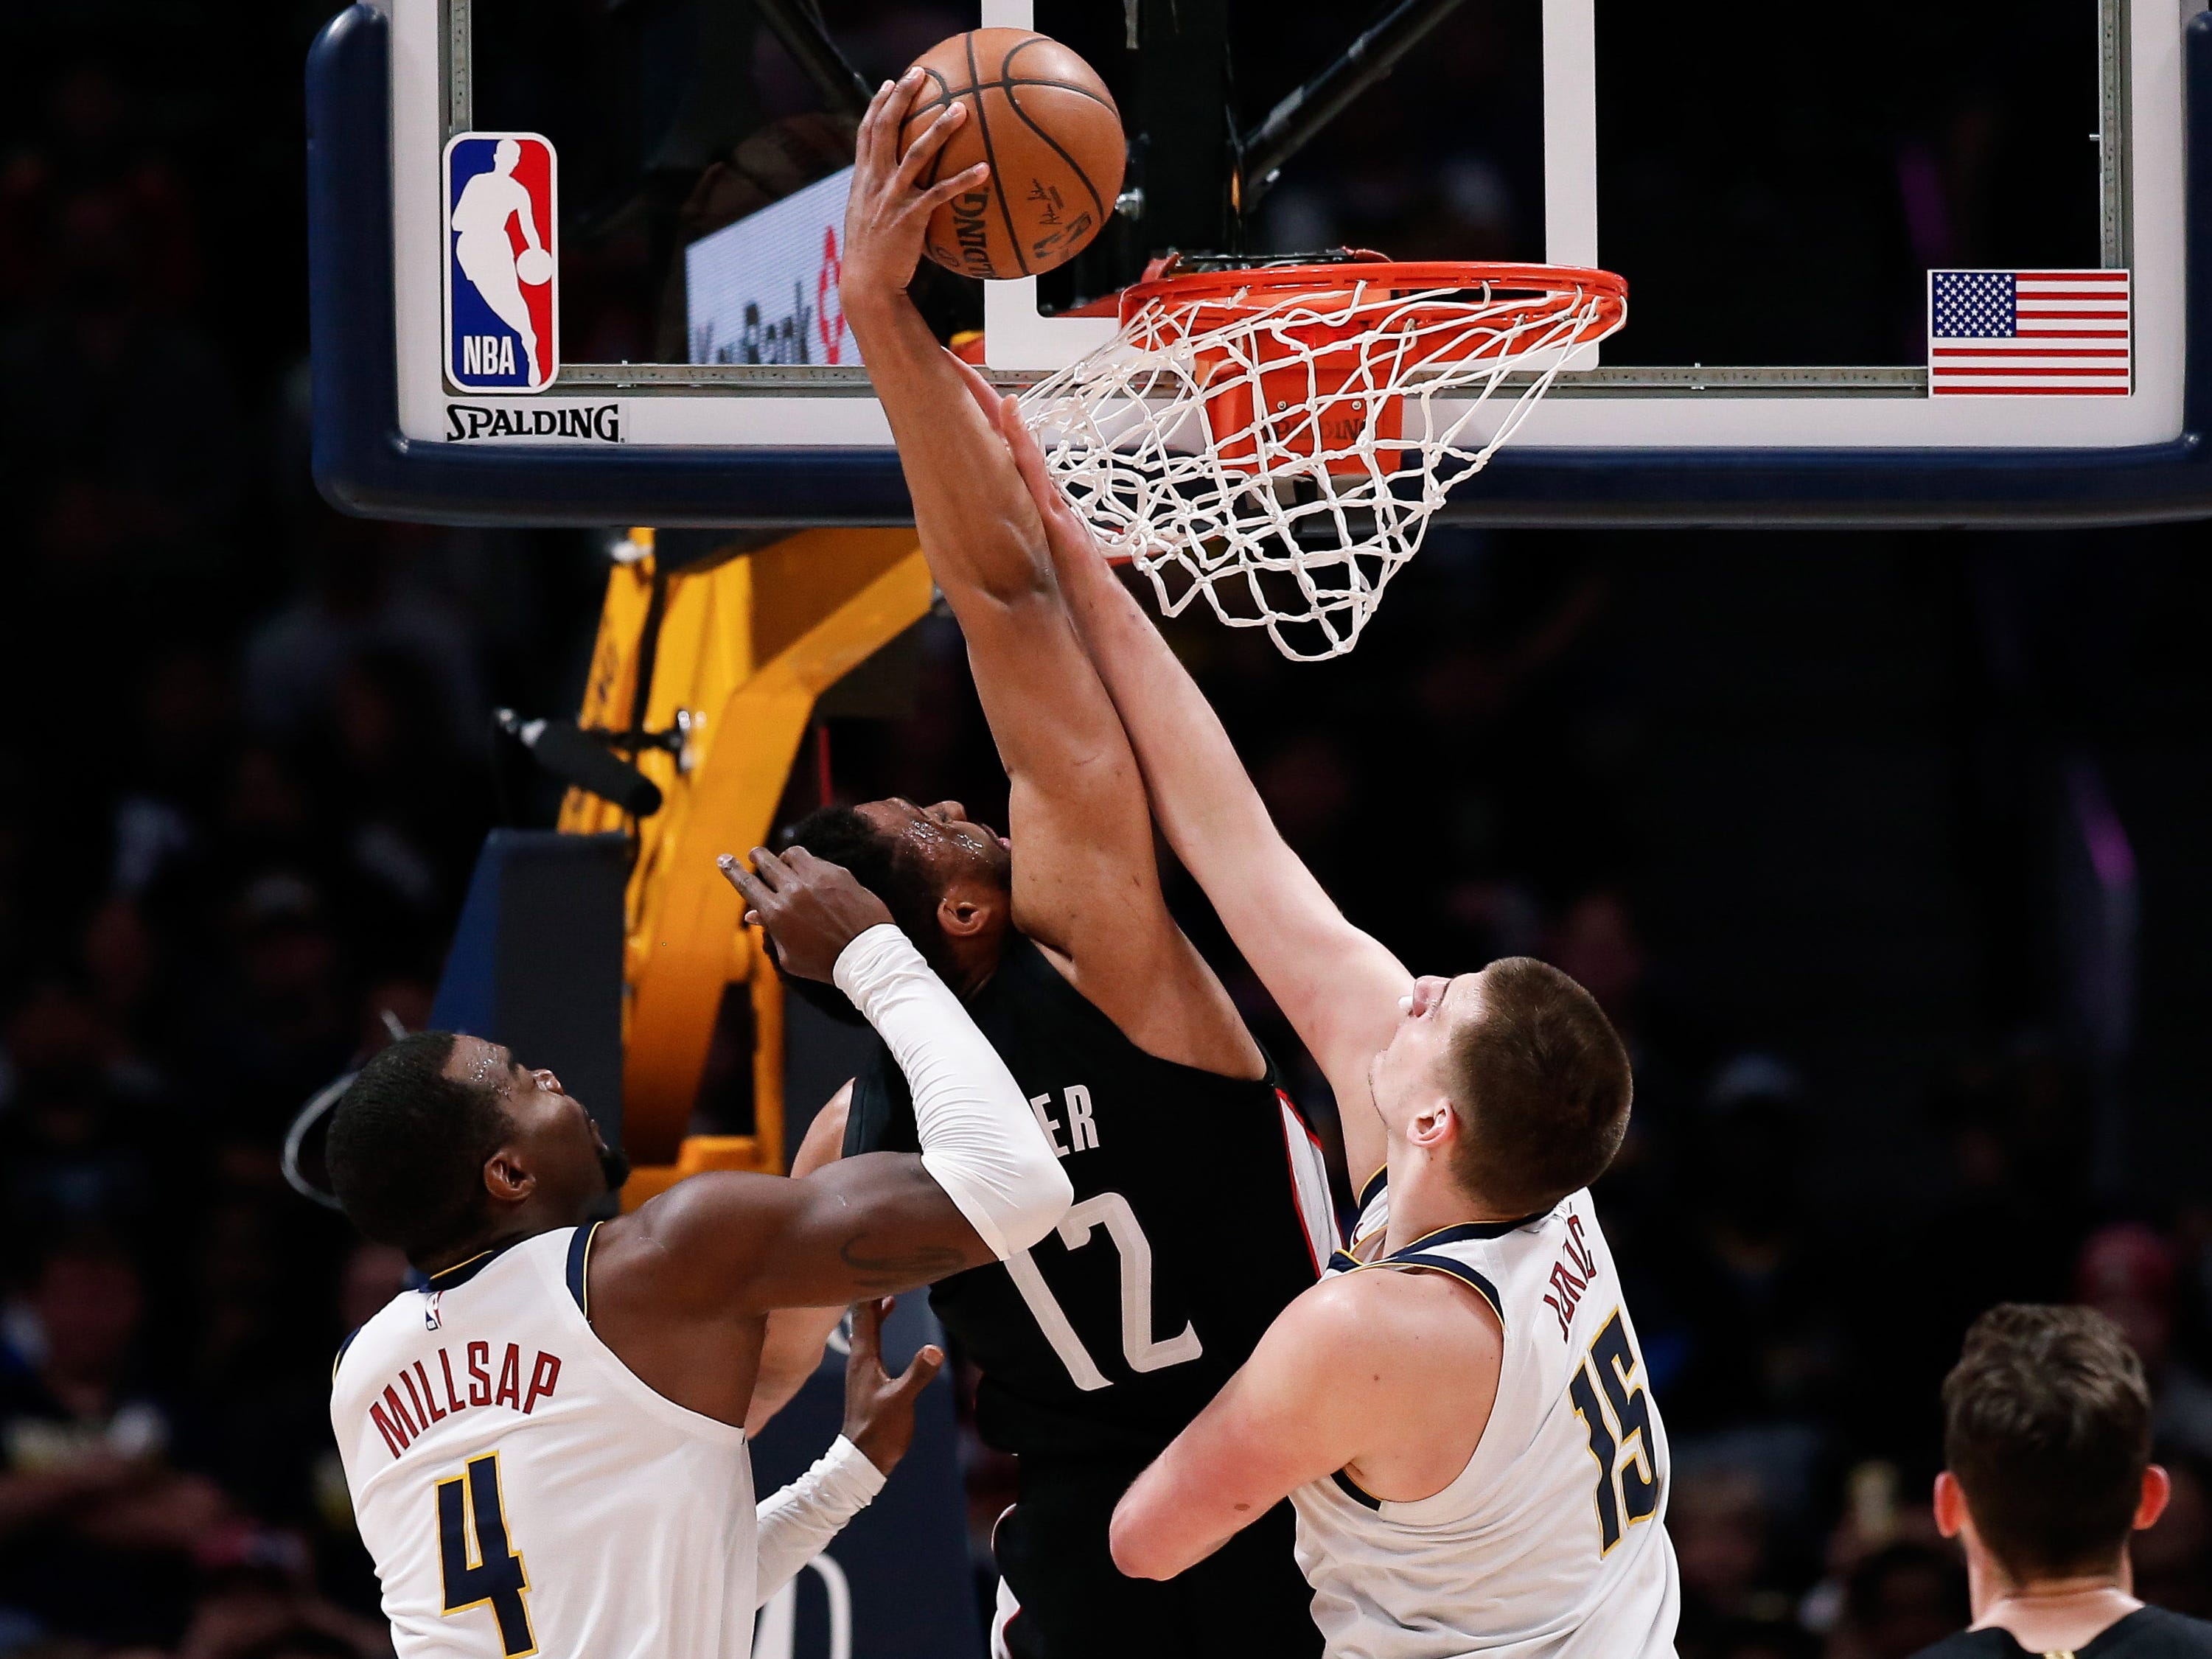 March 31: Wizards forward Jabari Parker (12) throws down the one-handed slam between Nuggets defenders Paul Millsap (4) and Nikola Jokic (15) during the first half in Denver.